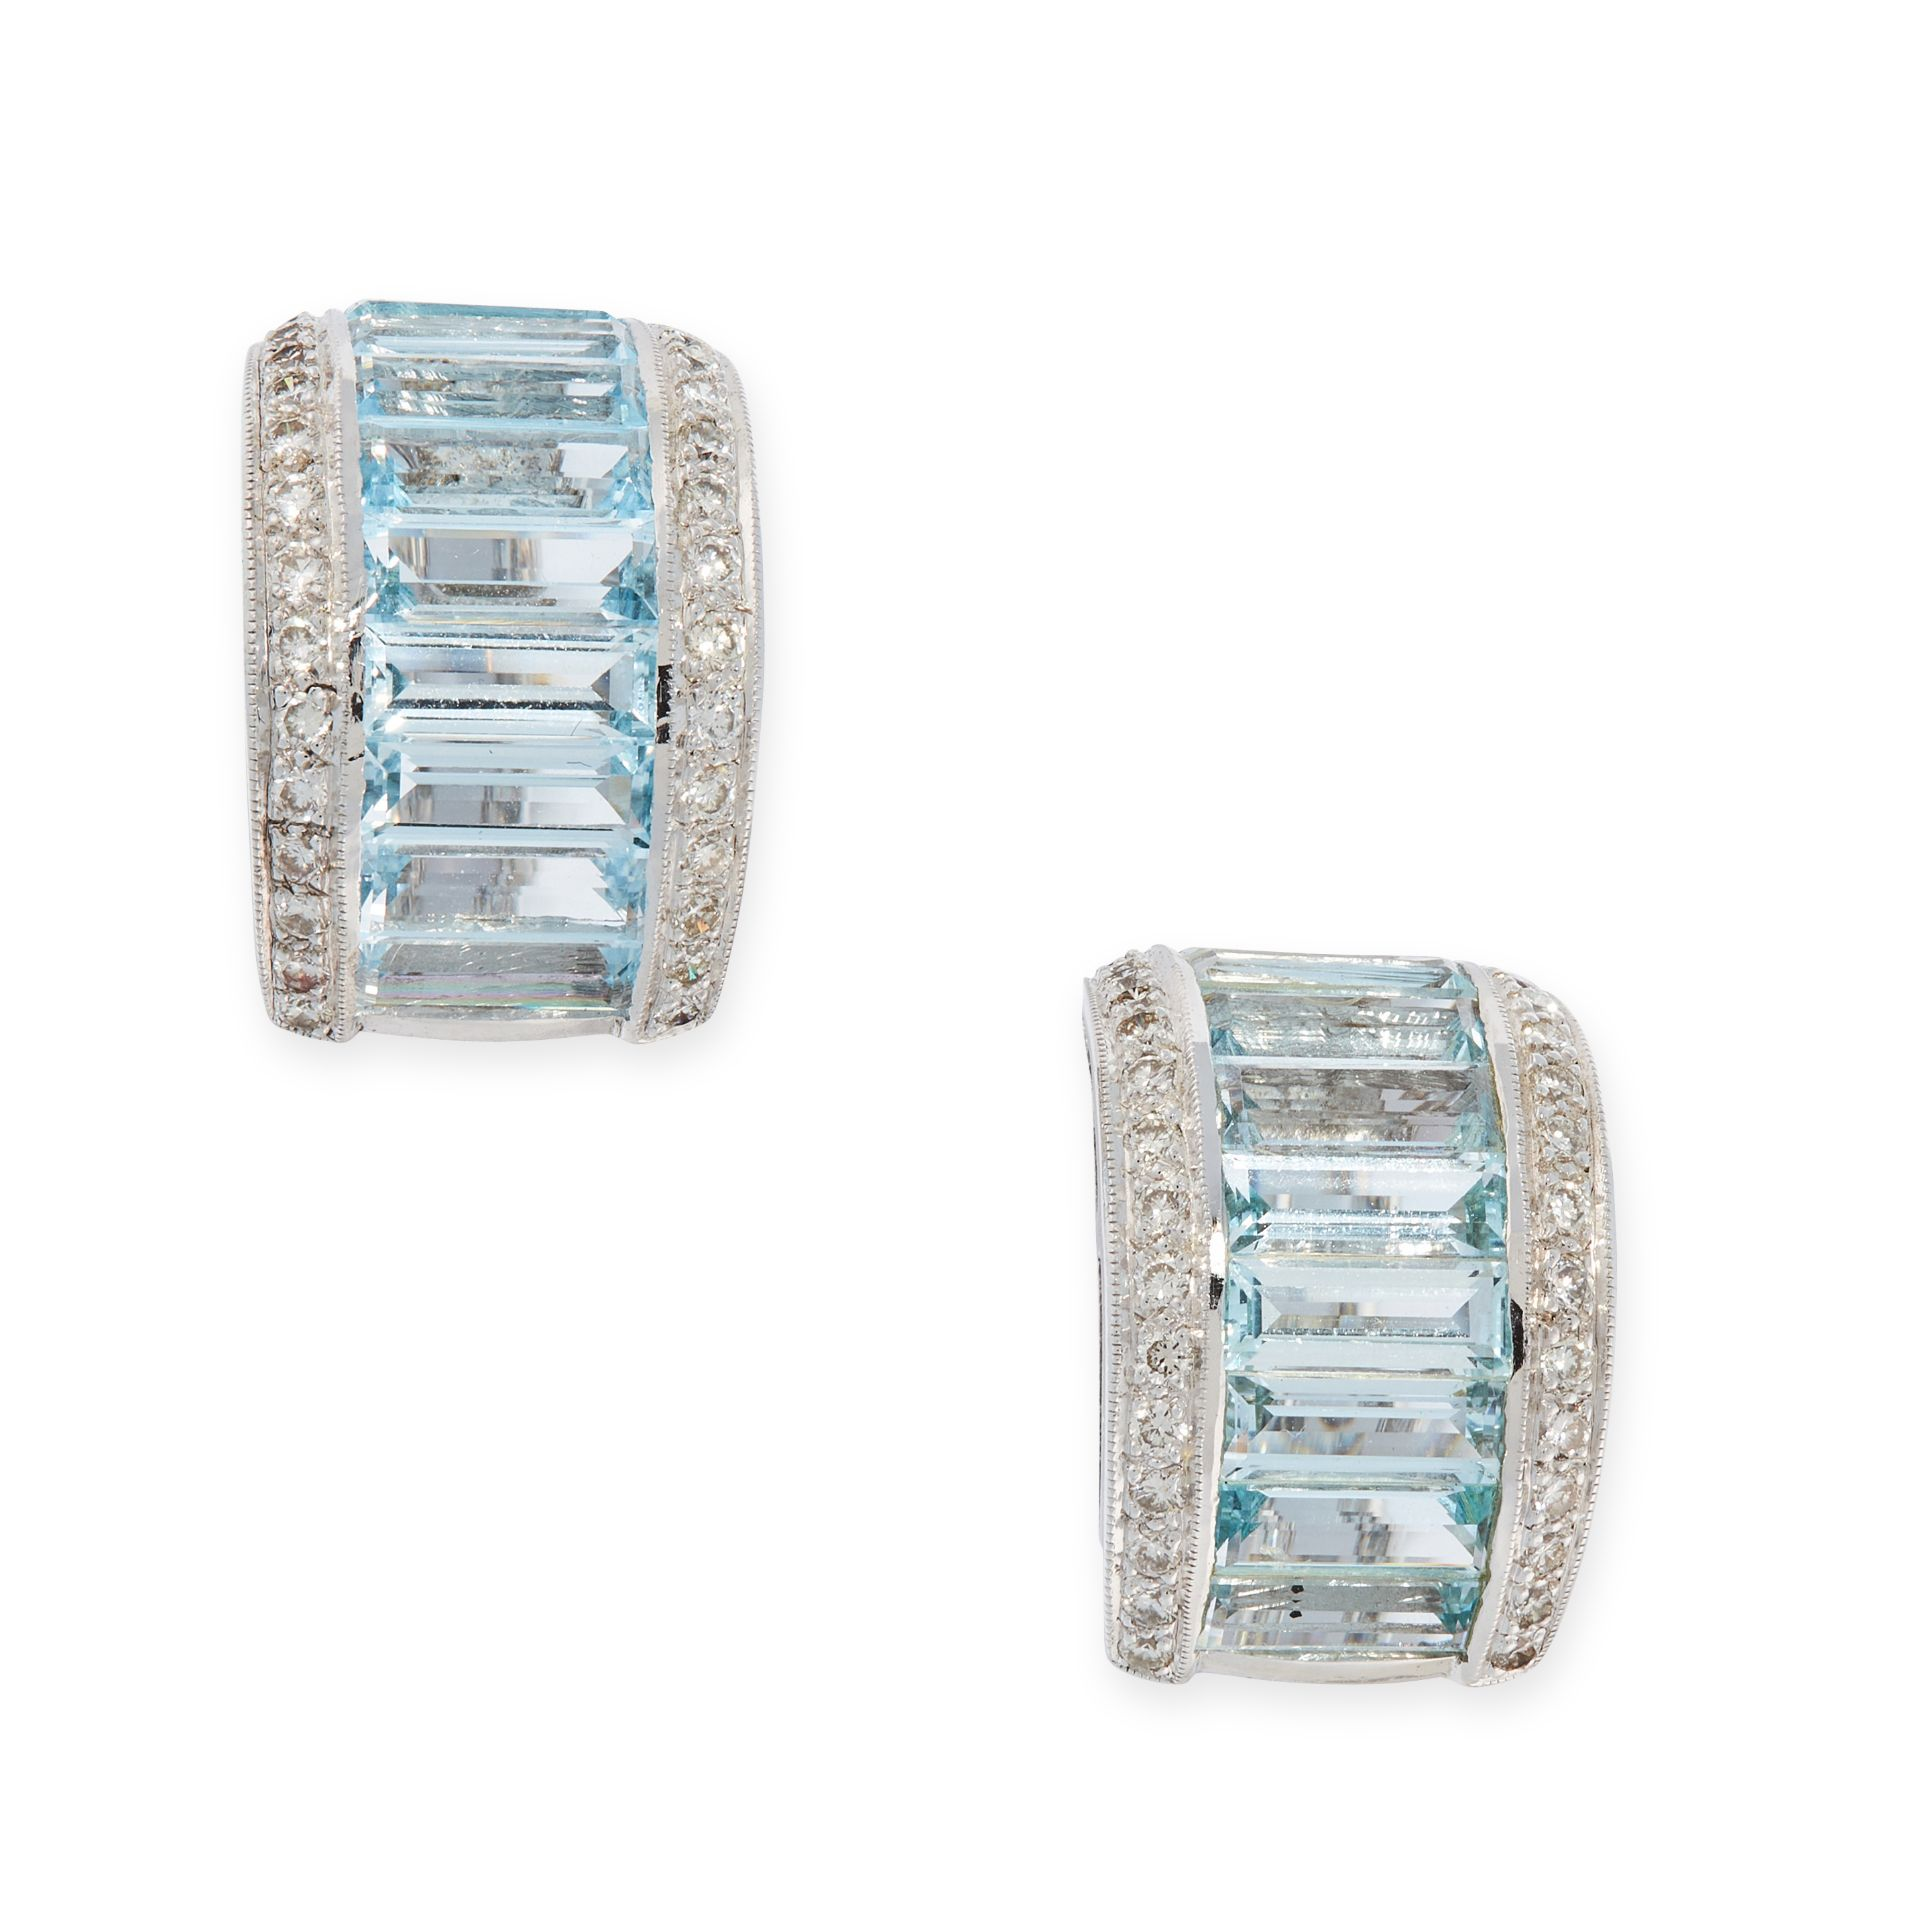 A PAIR OF AQUAMARINE AND DIAMOND EARRINGS each formed as a half hoop, set with rows of step cut